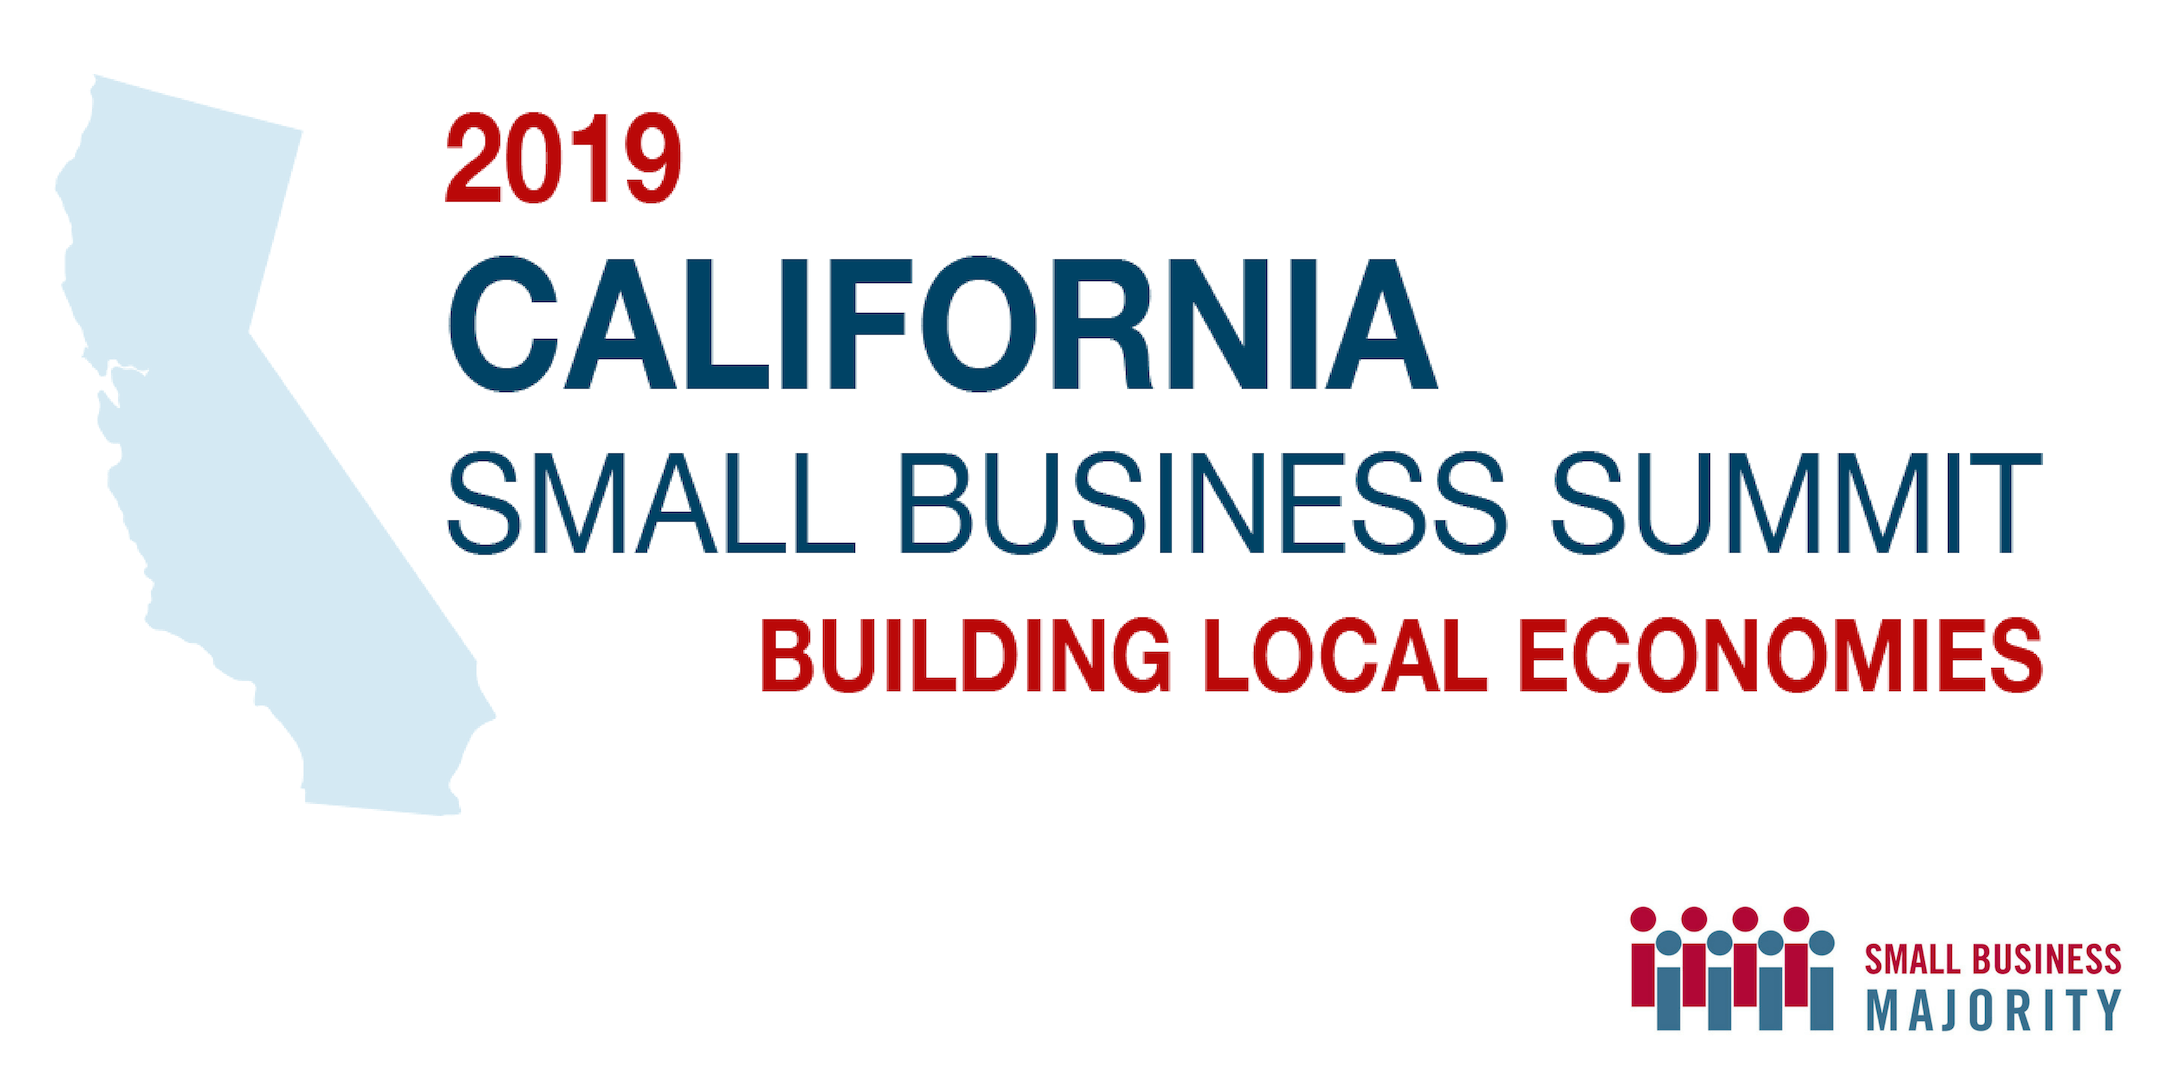 California Small Business Summit